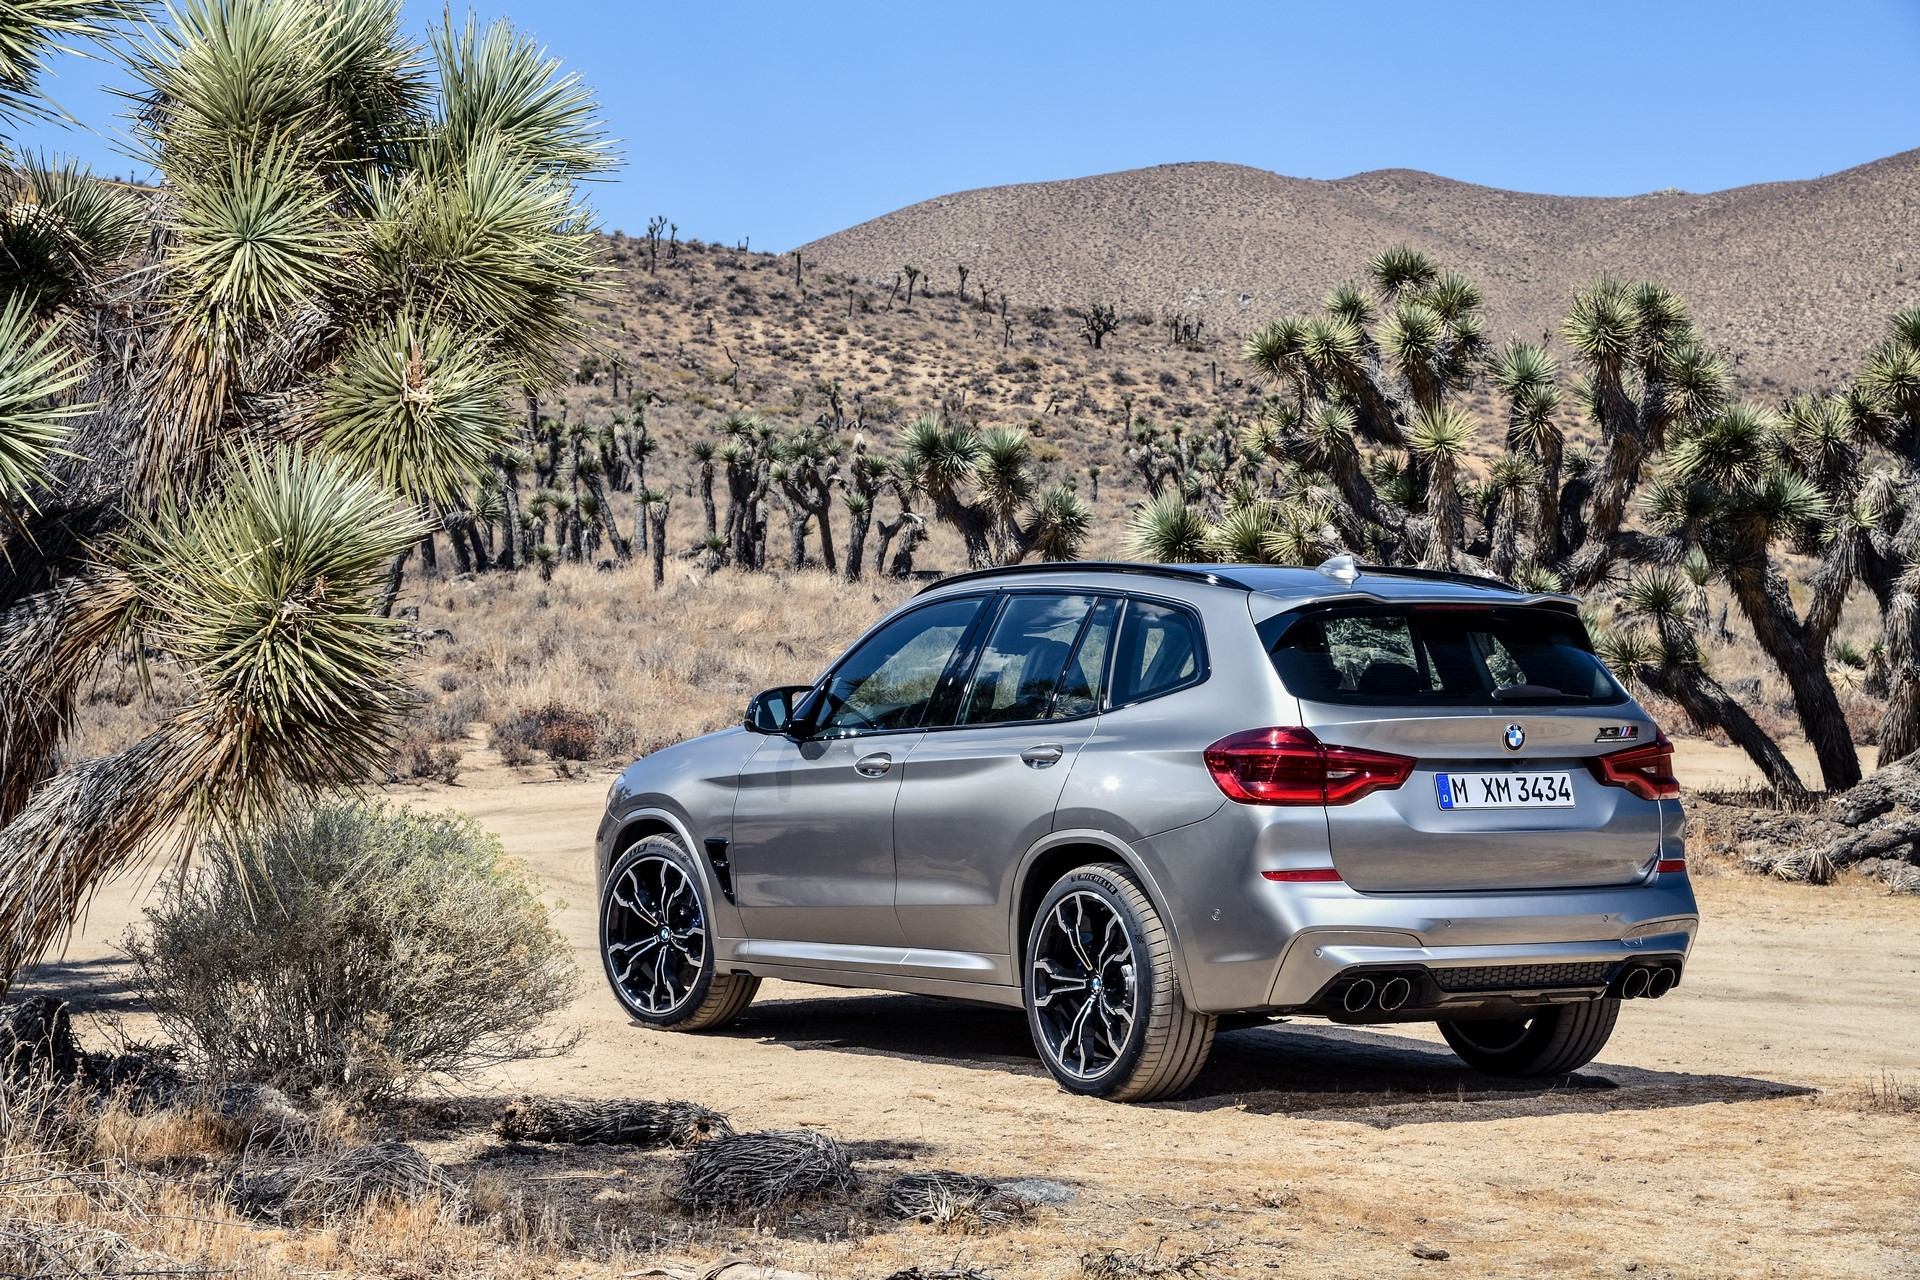 BMW X3 M and X4 M 2019 (37)